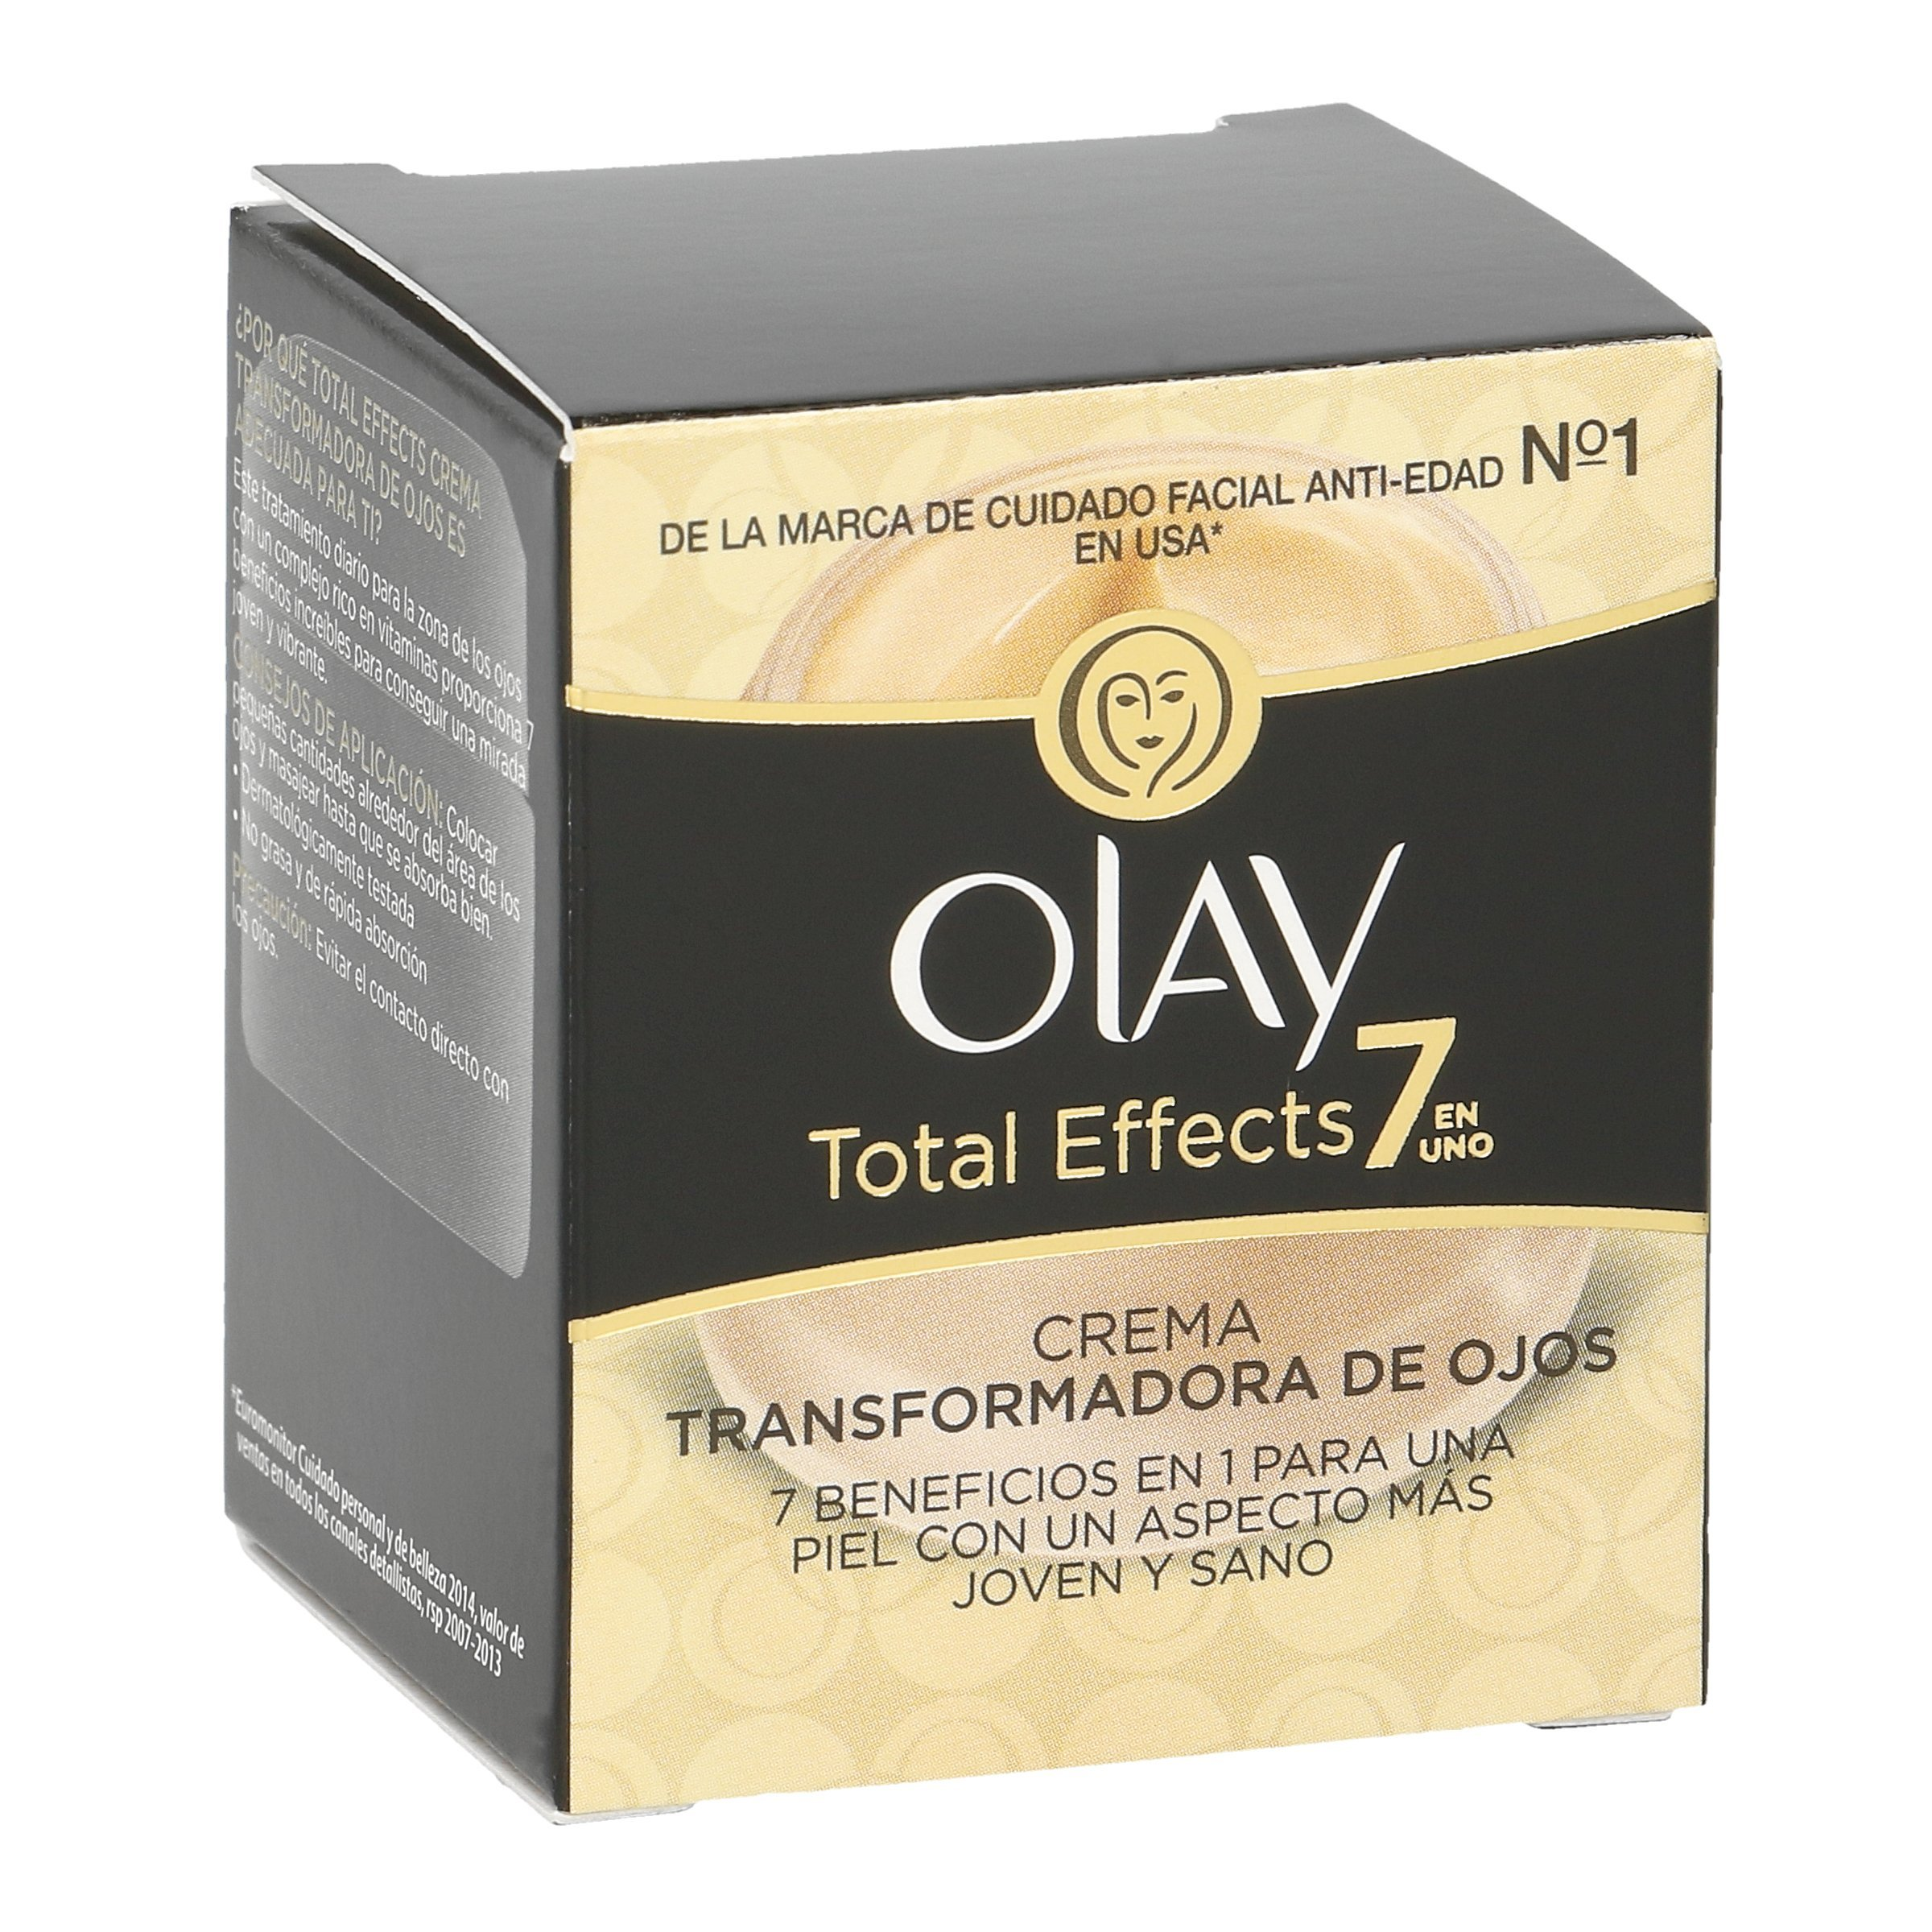 Olay Total Effects Crema Transformadora Ojos - 15 ml product image